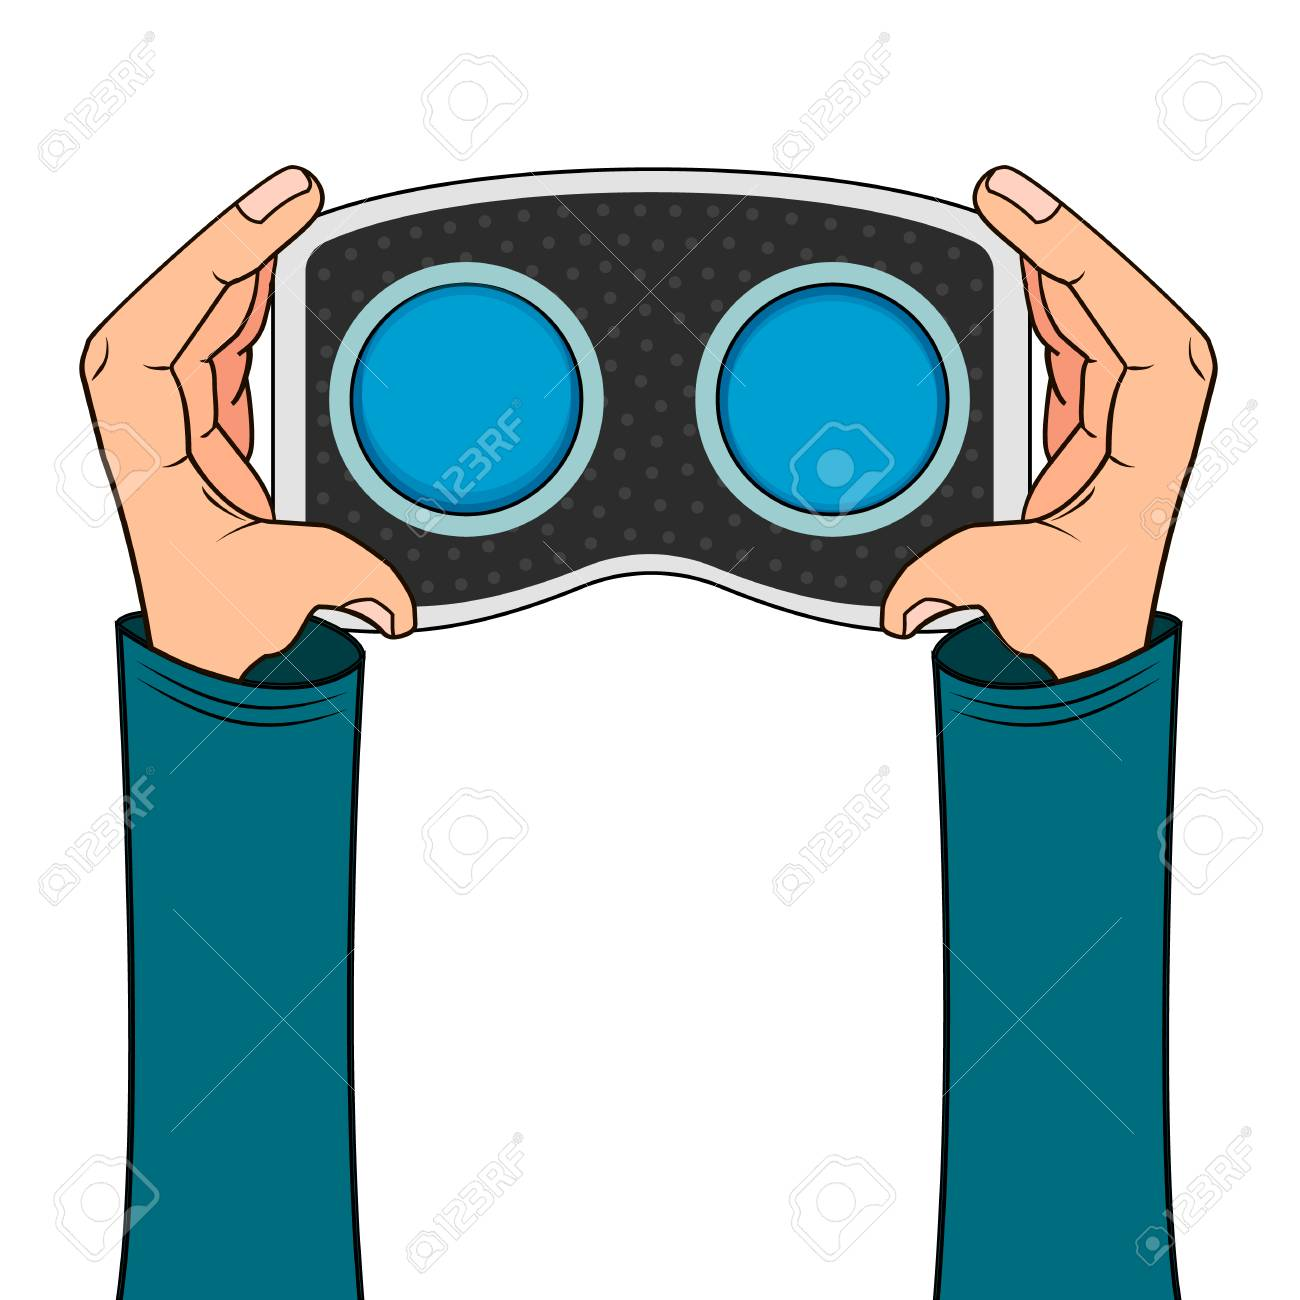 VR headset in hand icon isolated on white background in cartoon